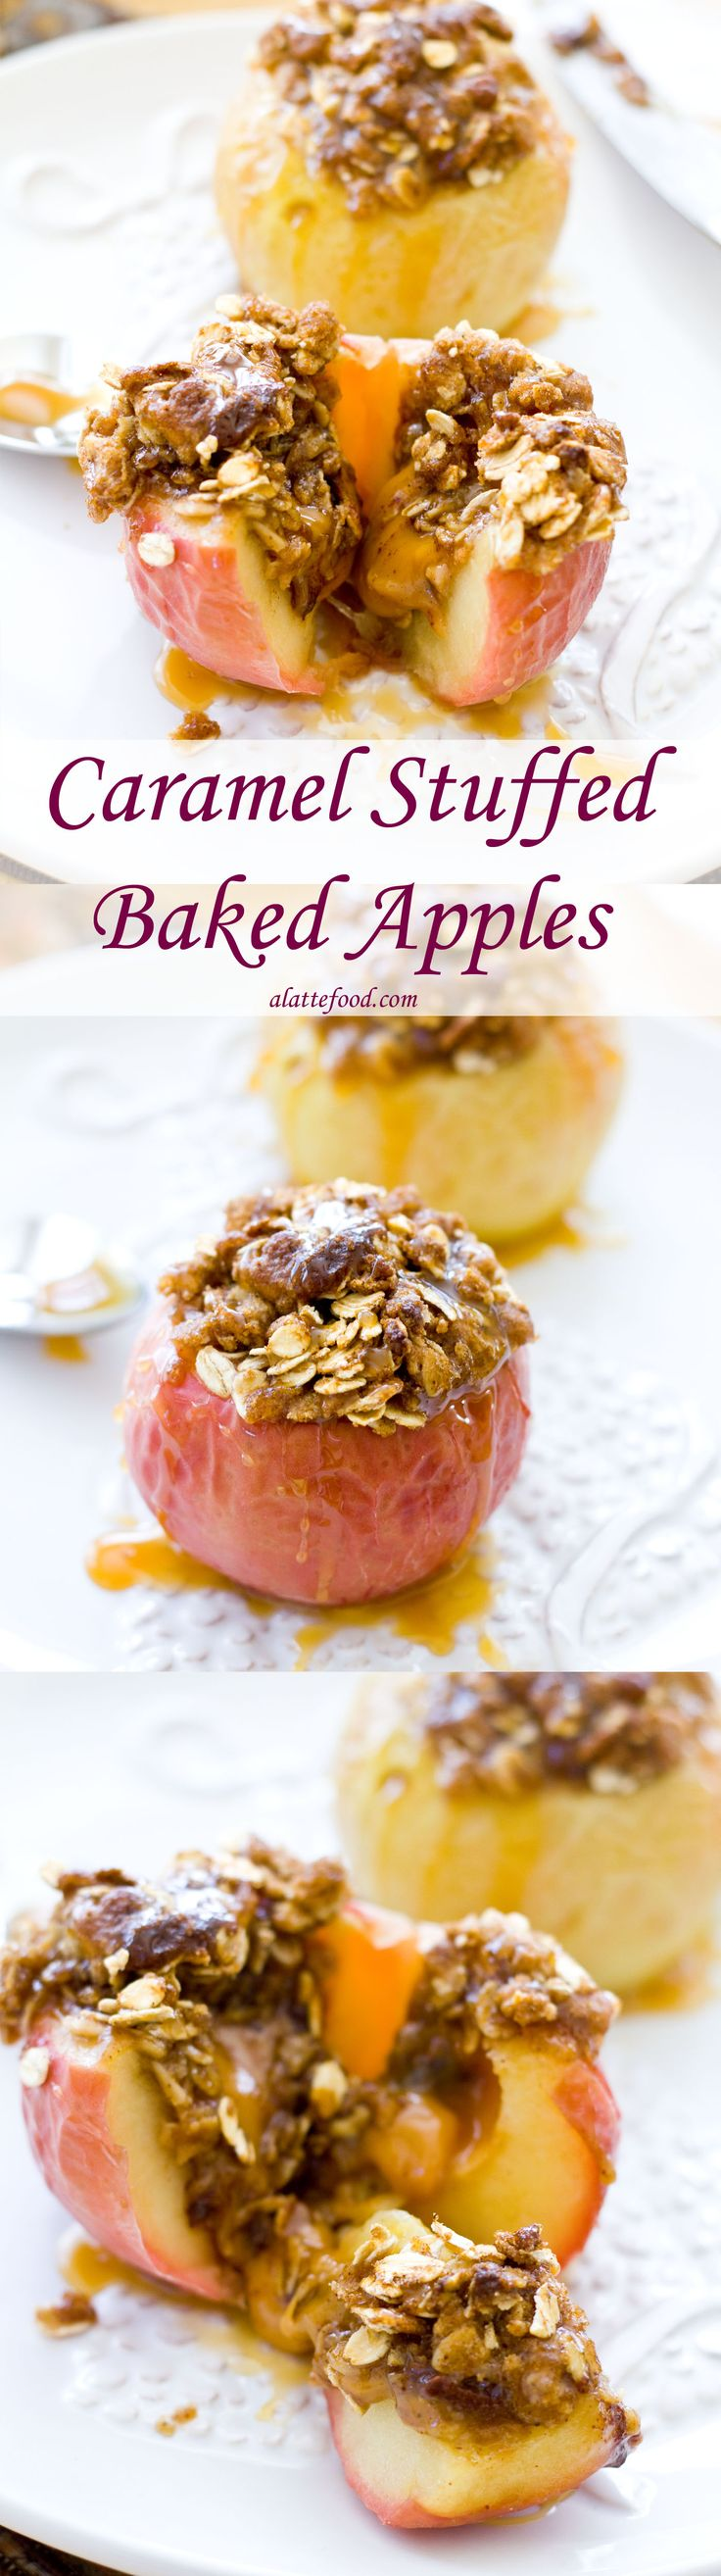 Baked apples stuffed with gooey caramel and topped with a brown sugar and oat crumble! | www.alattefood.com/